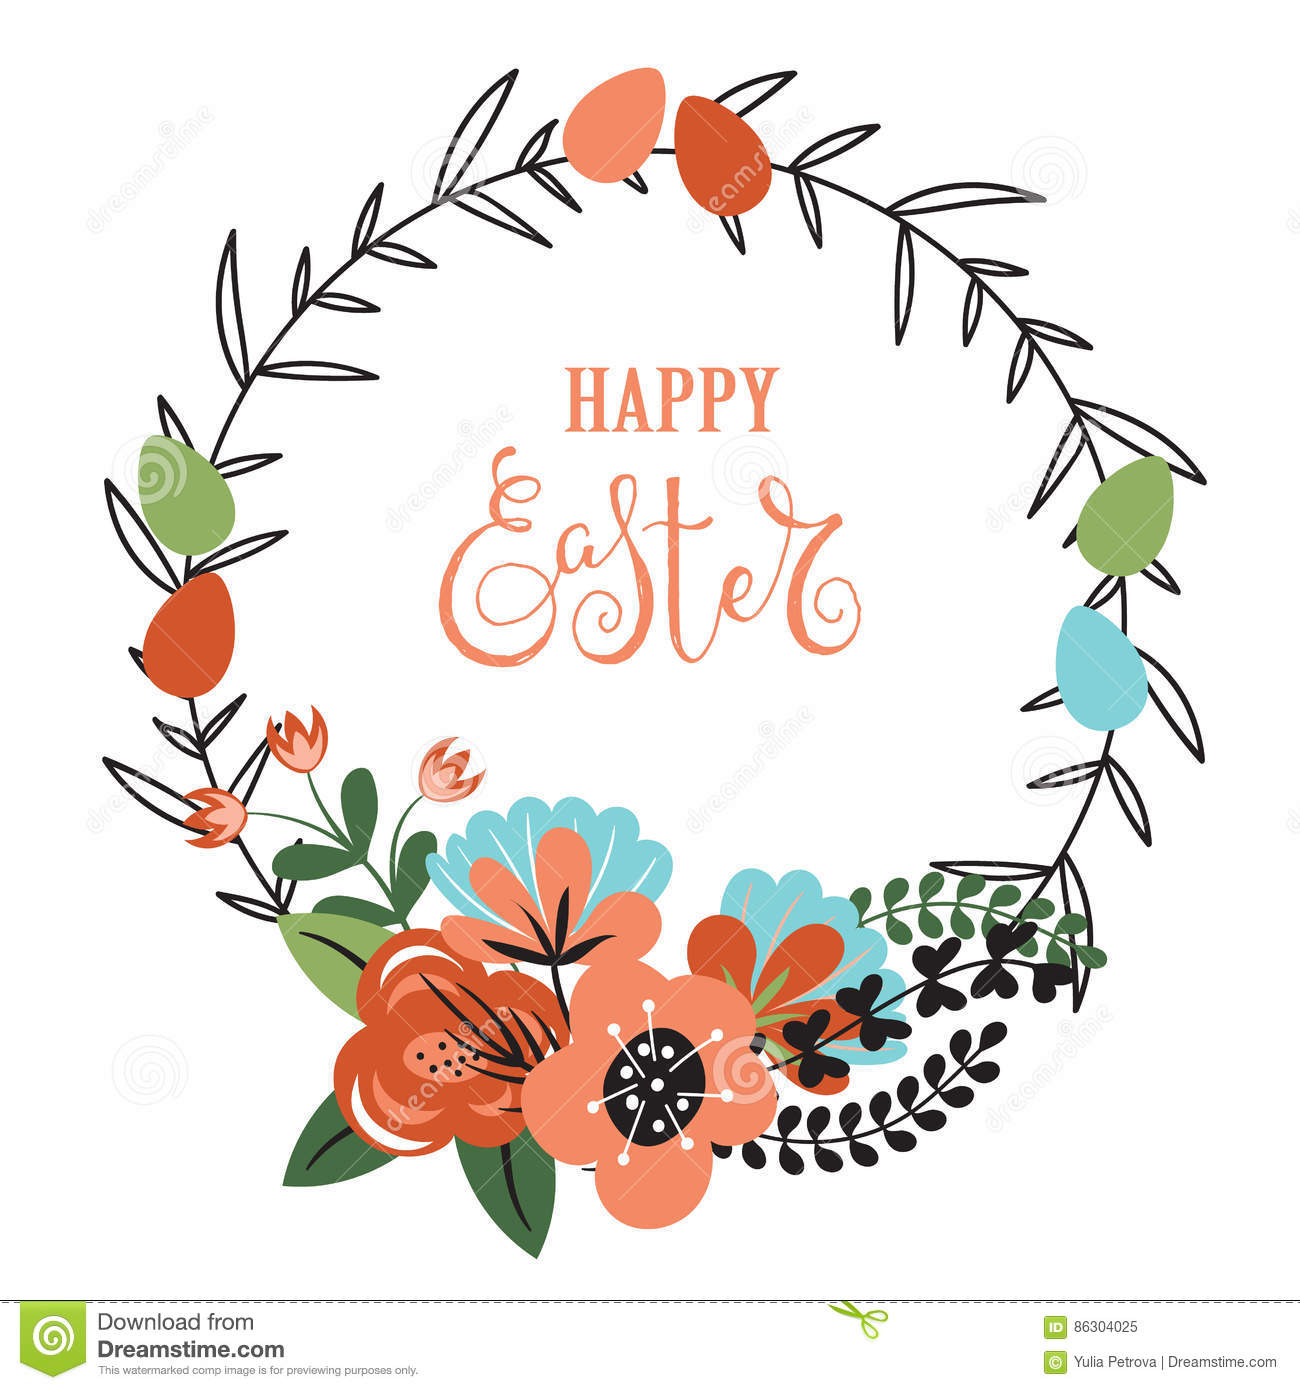 Easter background with flowers and eggs.